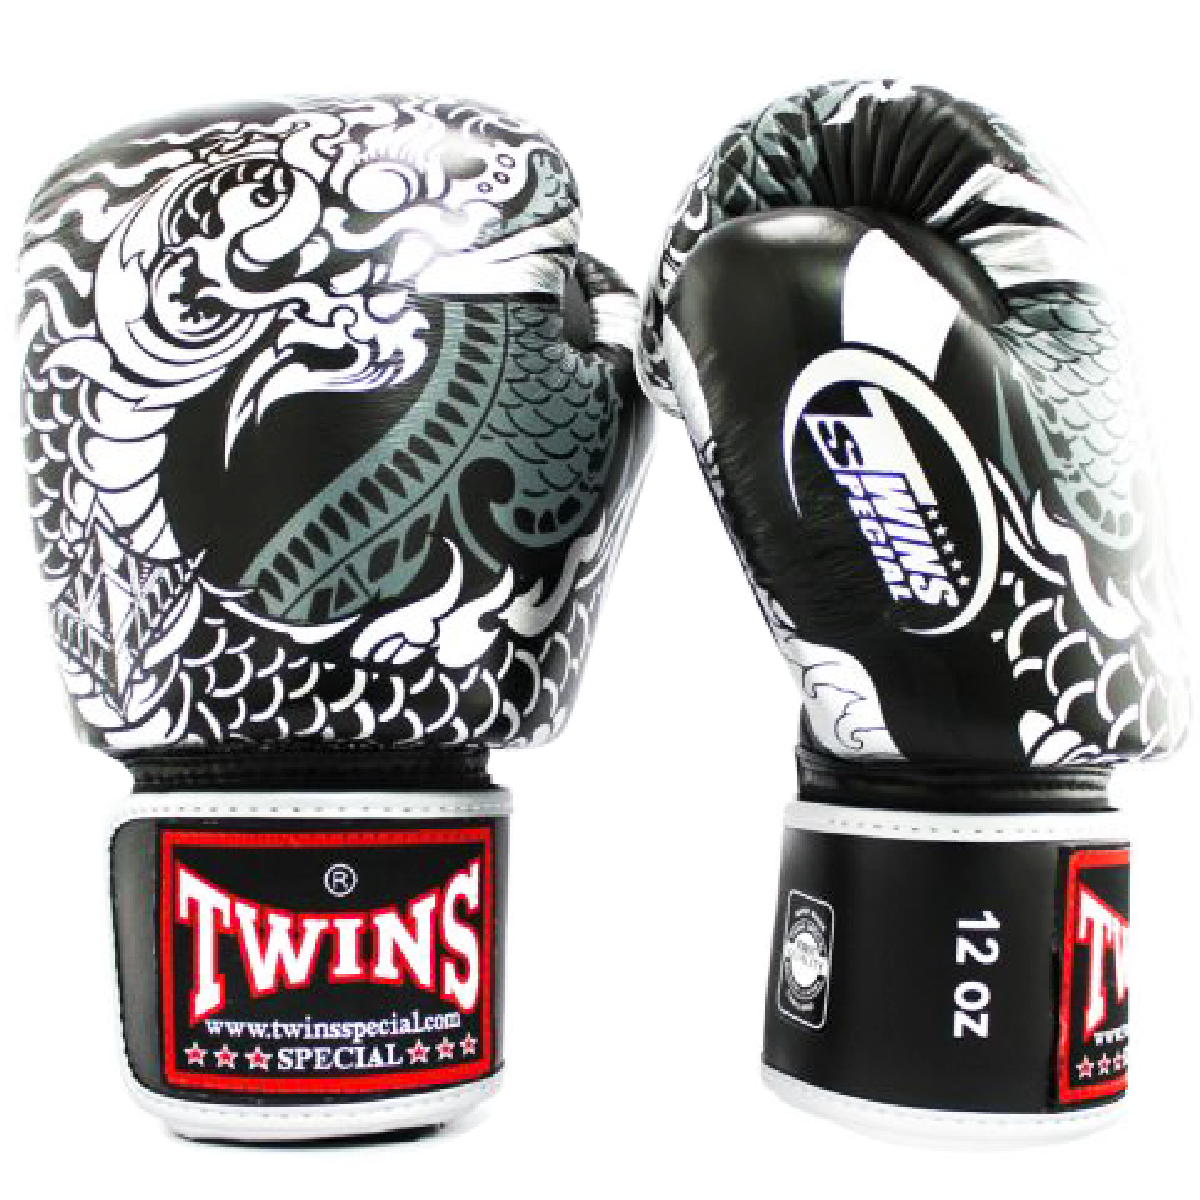 Găng Tay Twins Fbgvl3-52Sv Special Fancy Boxing Gloves Dragon